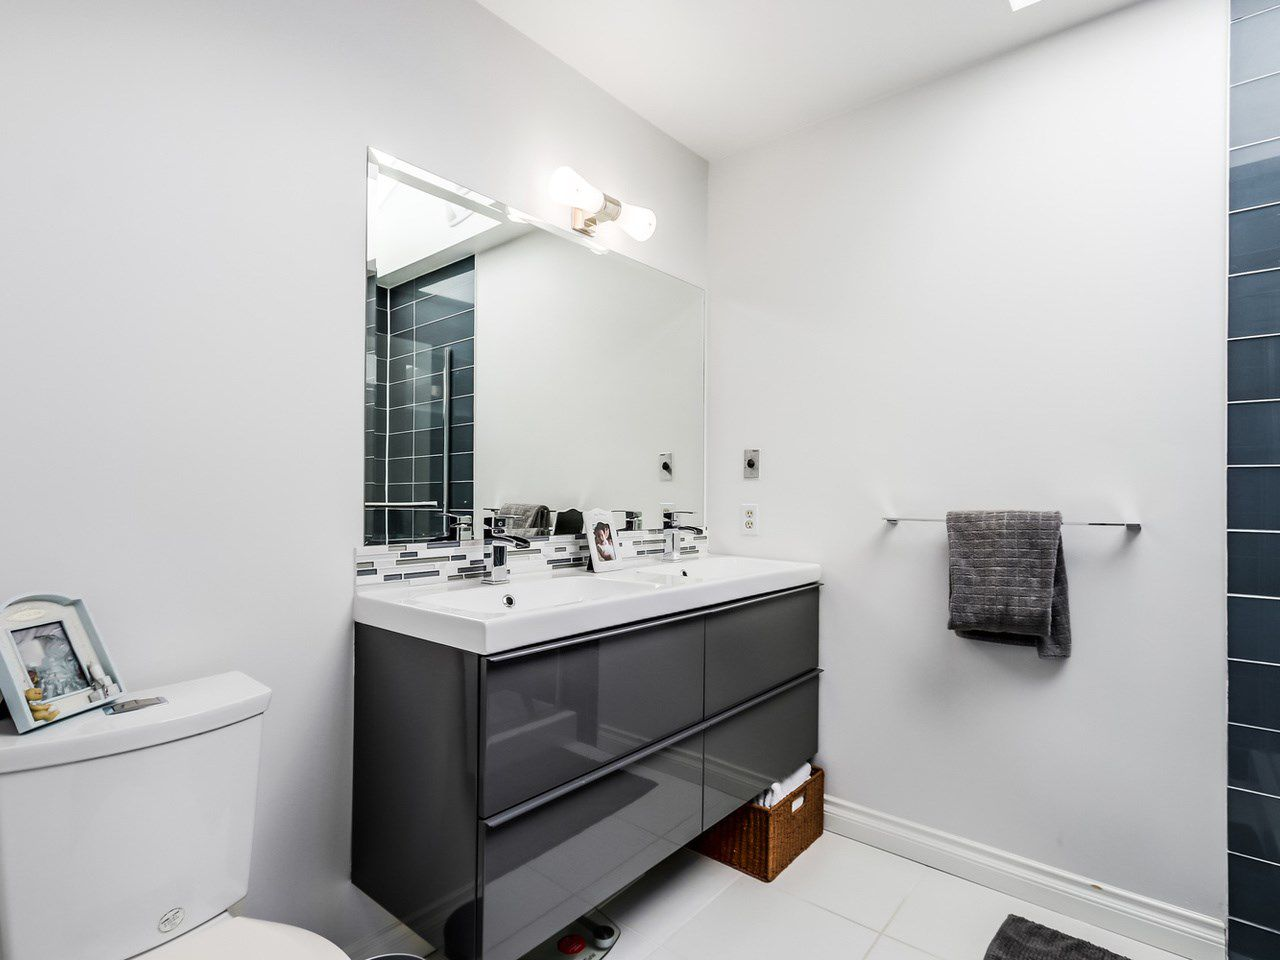 Photo 12: Photos: 2 269 E KEITH ROAD in North Vancouver: Lower Lonsdale House 1/2 Duplex for sale : MLS®# R2025742